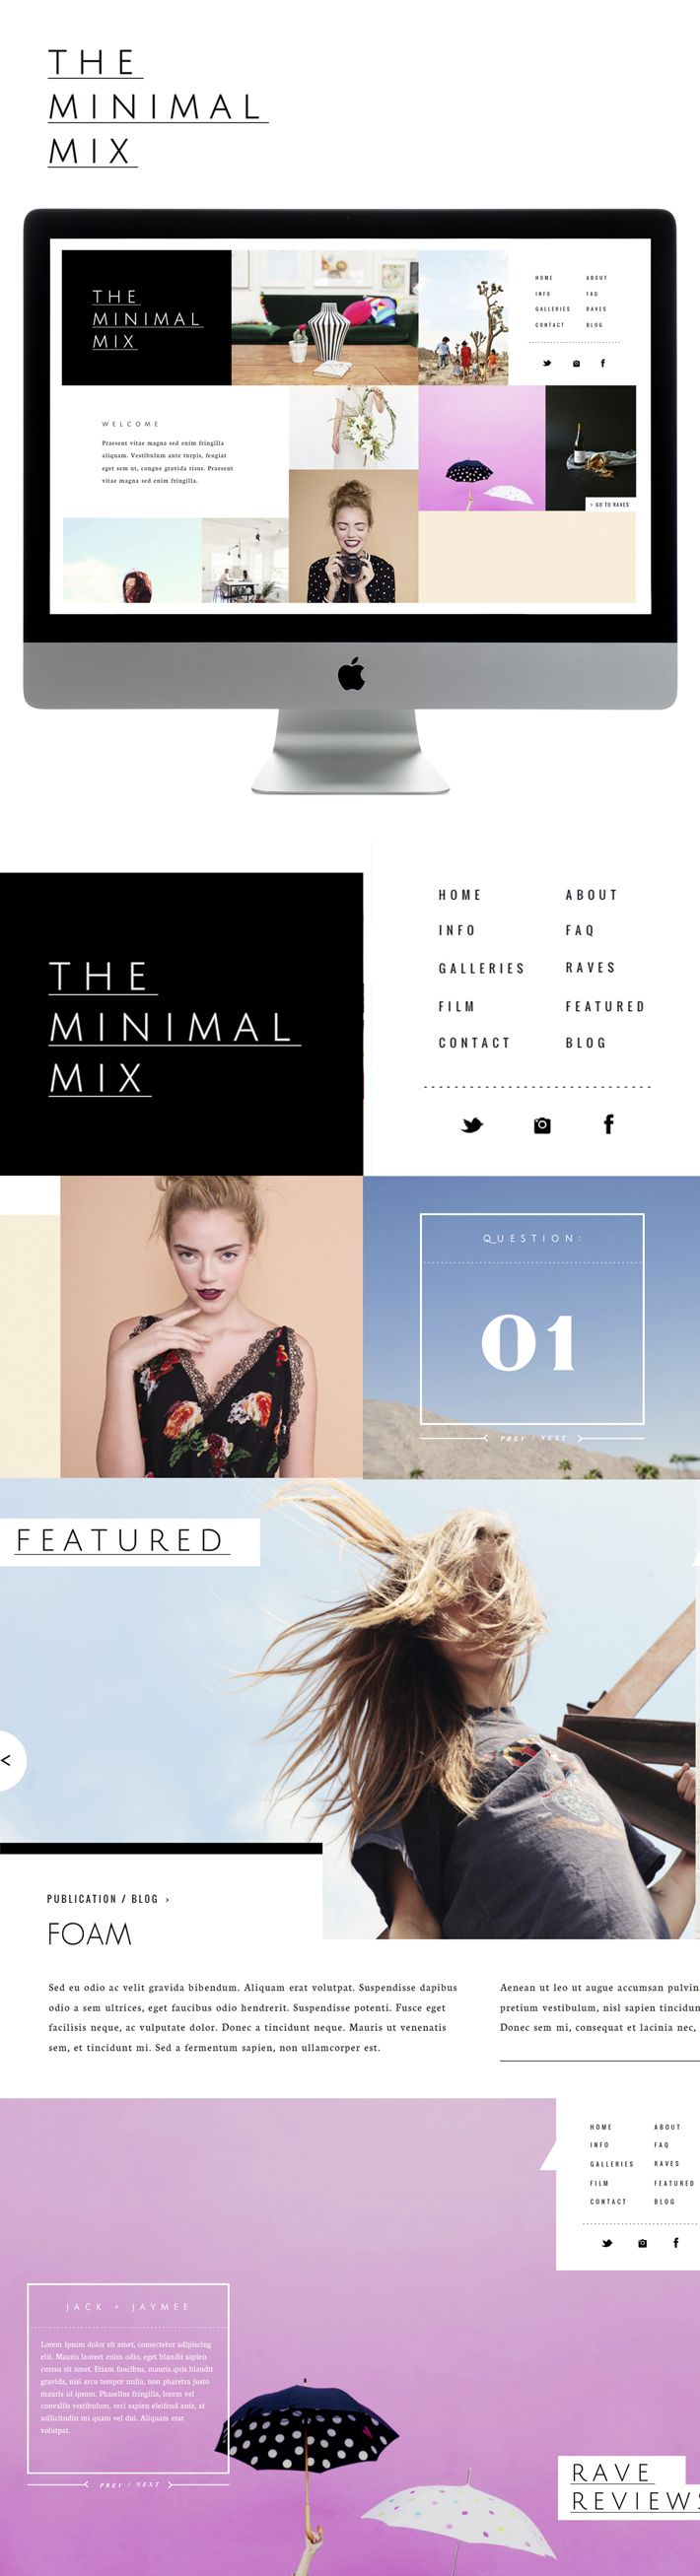 Minimal Mix | Sitehouse Designs by Liz Grant #webdesign